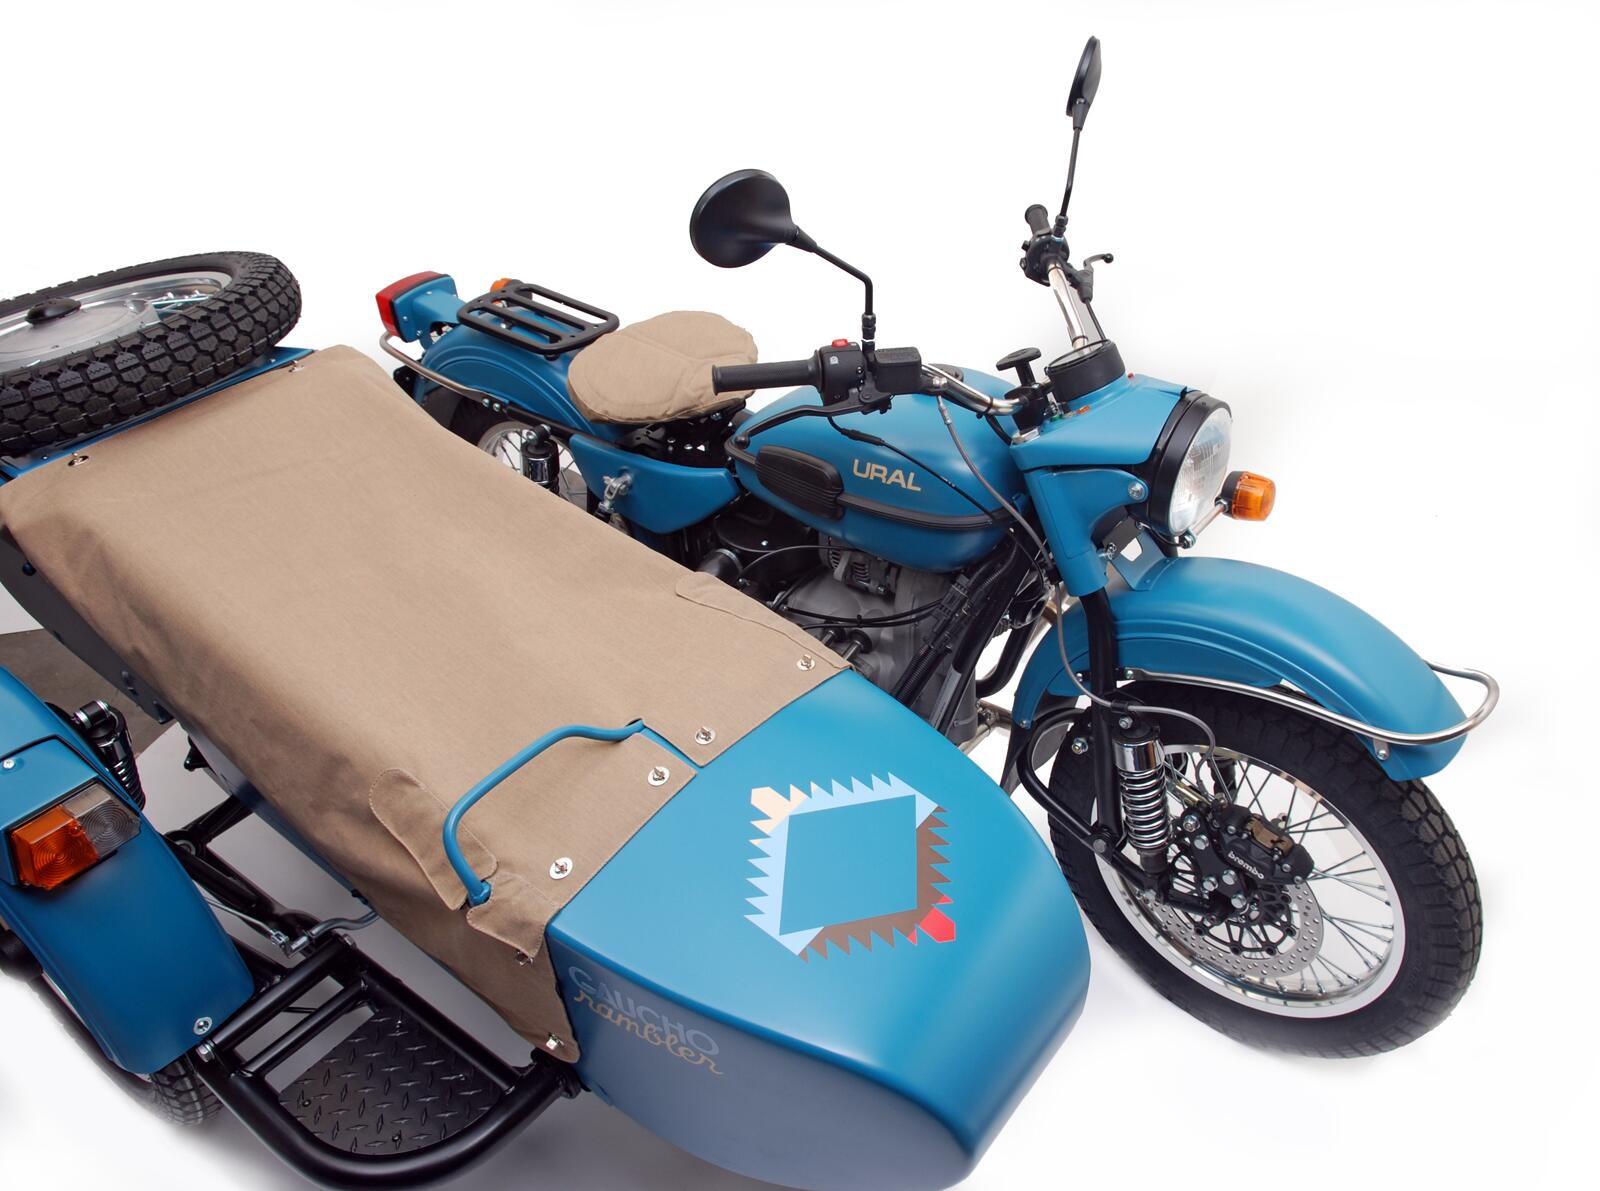 Hot off the press! A limited edition #motorcycle from @ural_twit and @PendletonWM — the very cool 'Gaucho Rambler.' http://t.co/Q5FXI68ybb